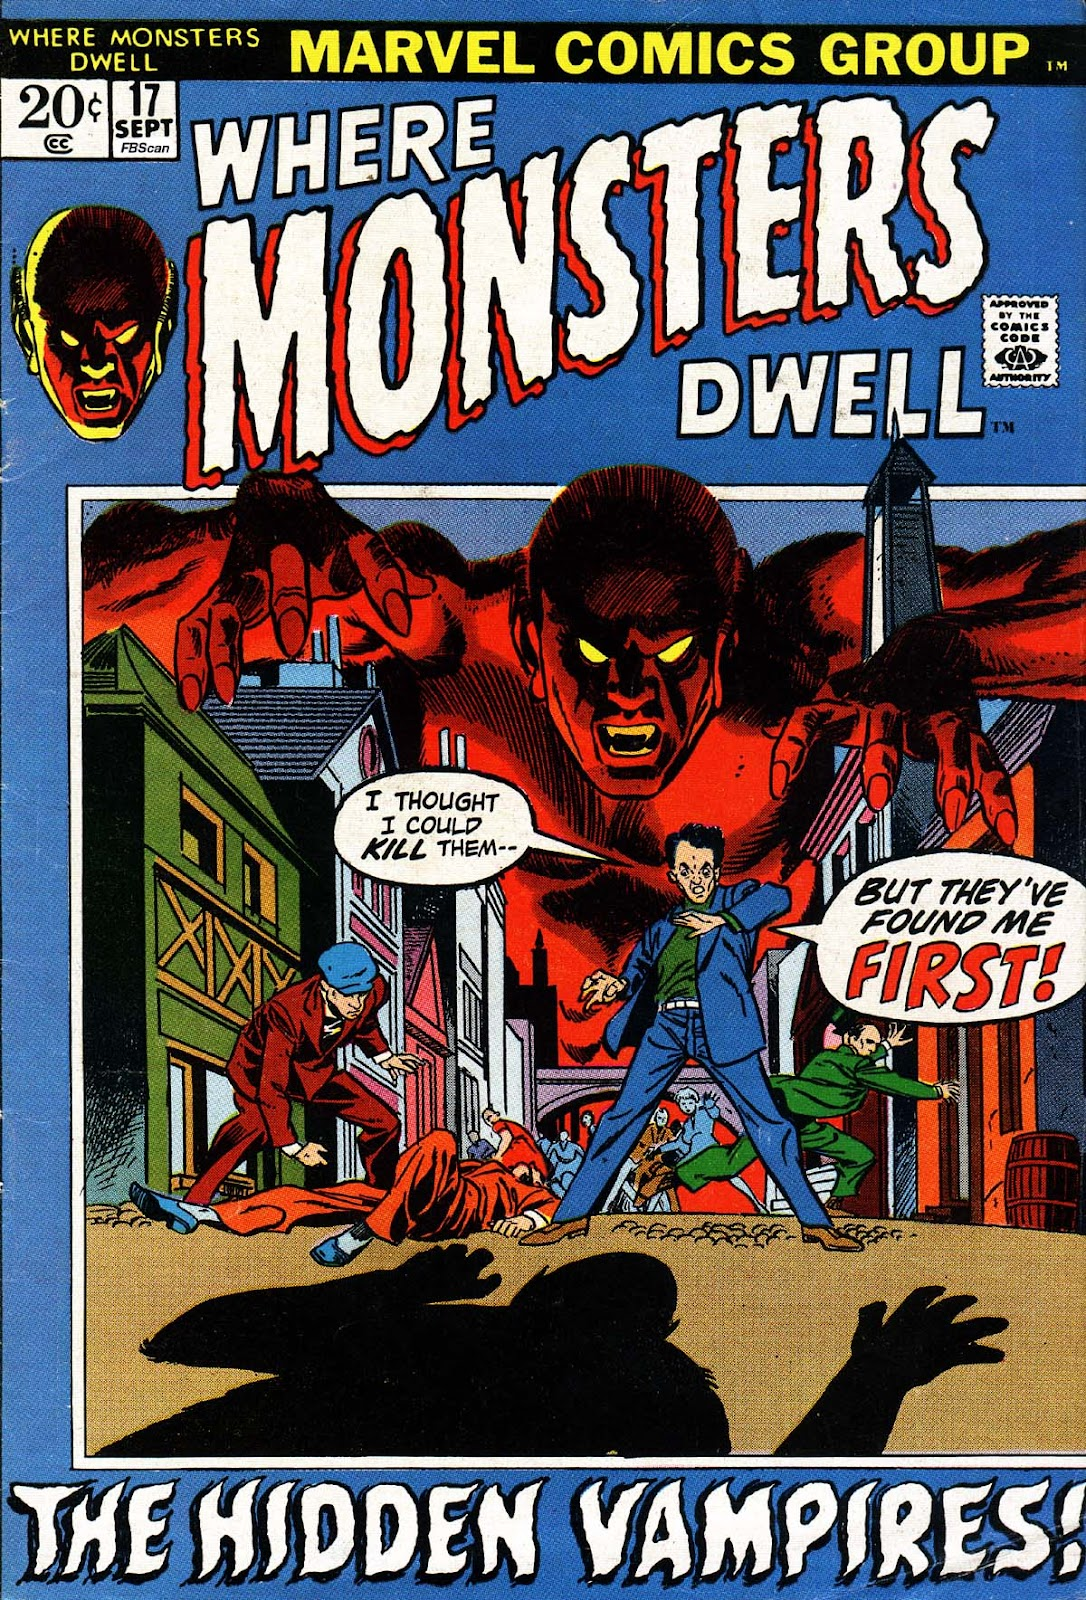 Where Monsters Dwell (1970) issue 17 - Page 1